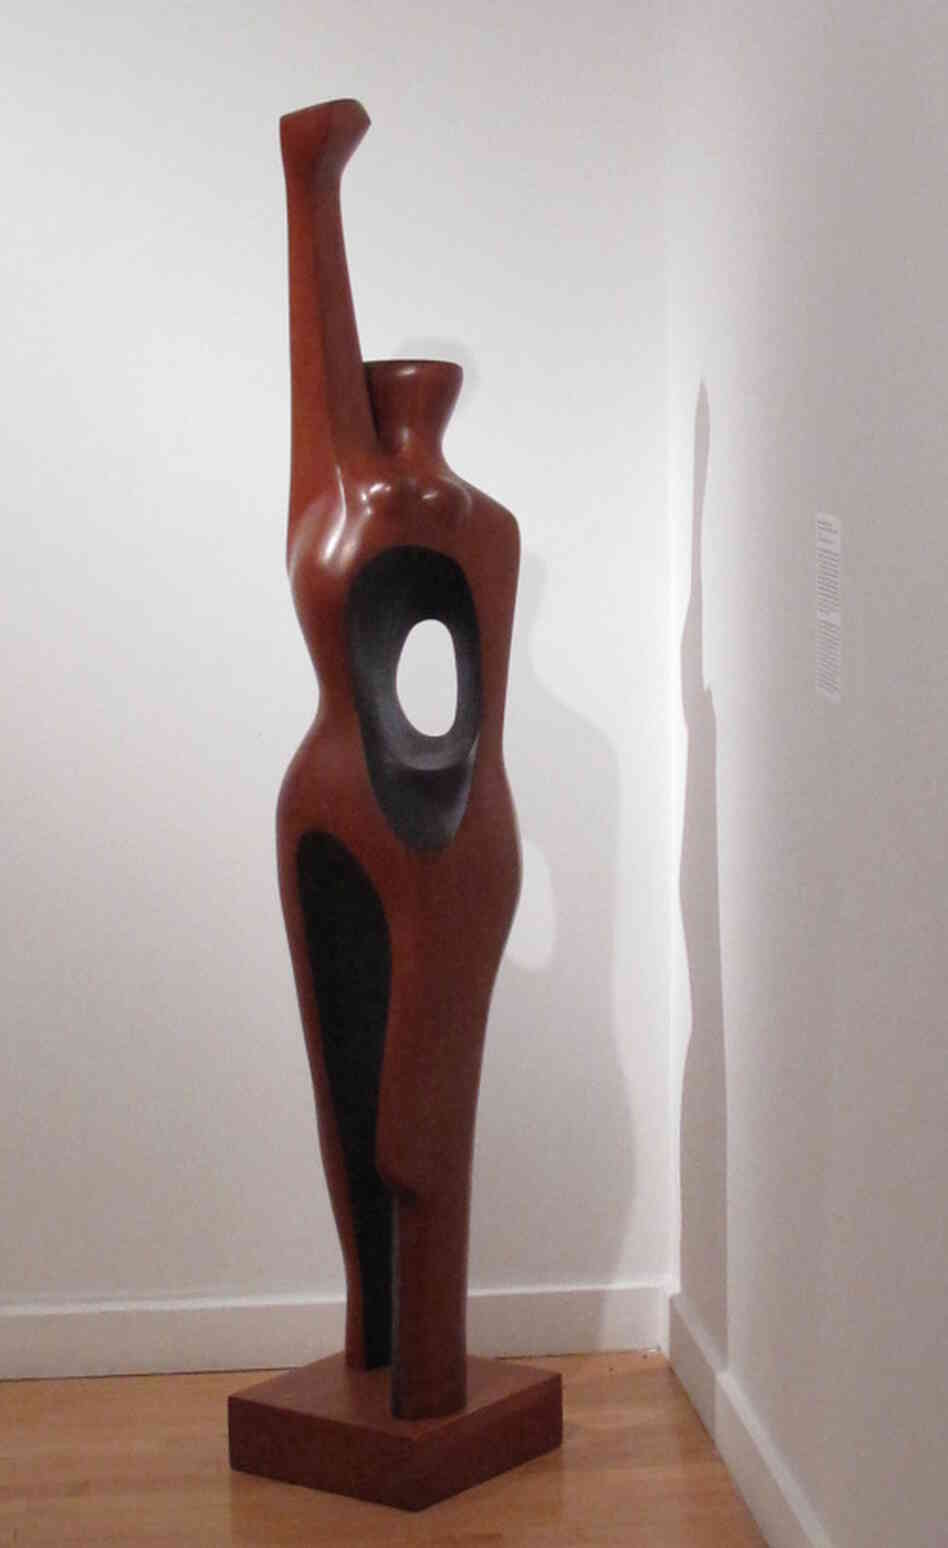 Elizabeth Catlett's 1968 sculpture Homage to My Young Black Sisters